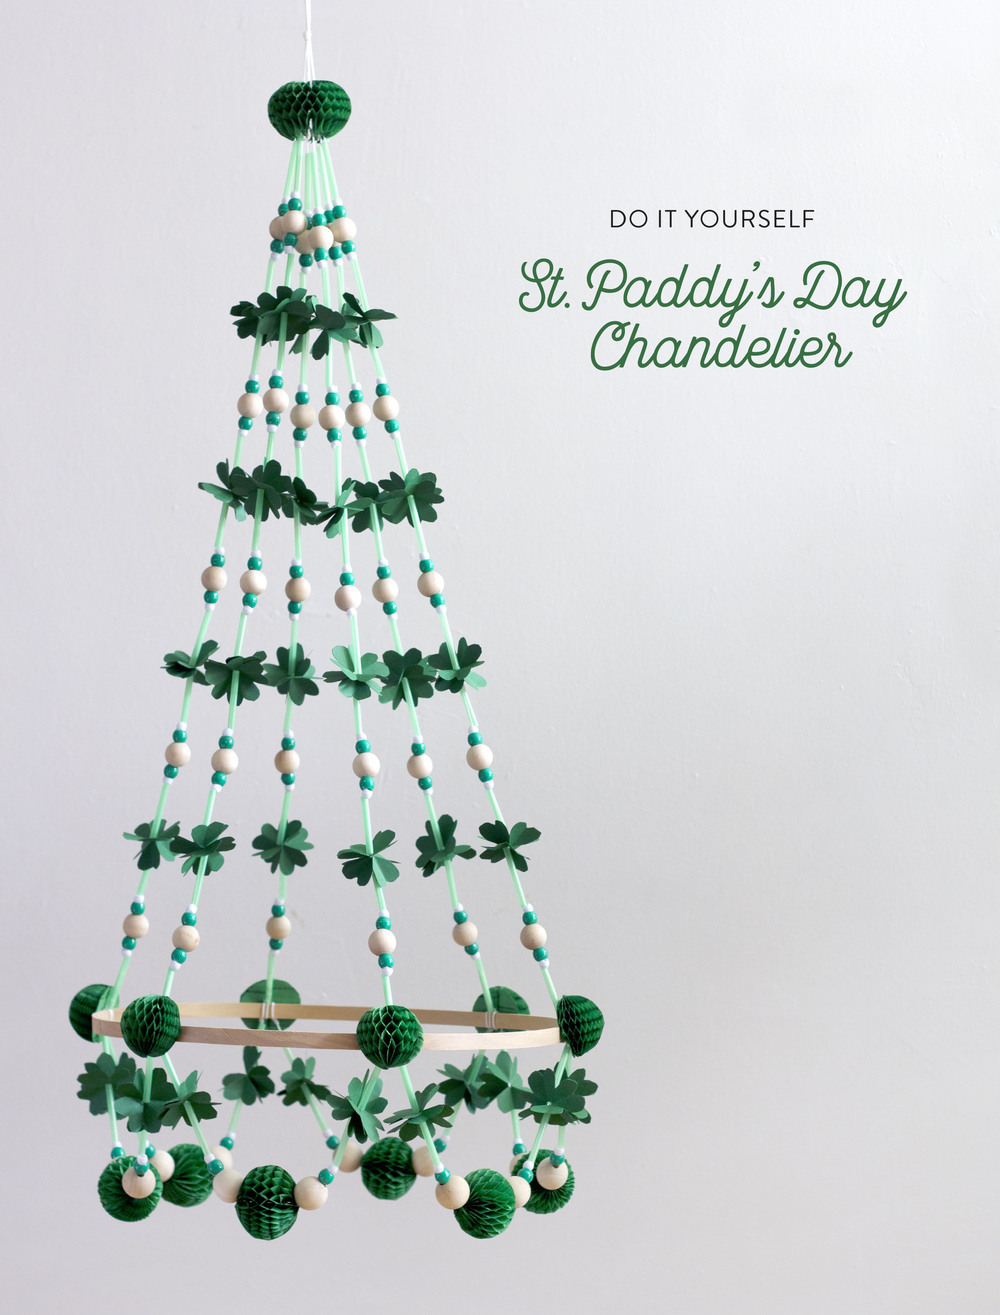 Saint Patricks Day Chandelier